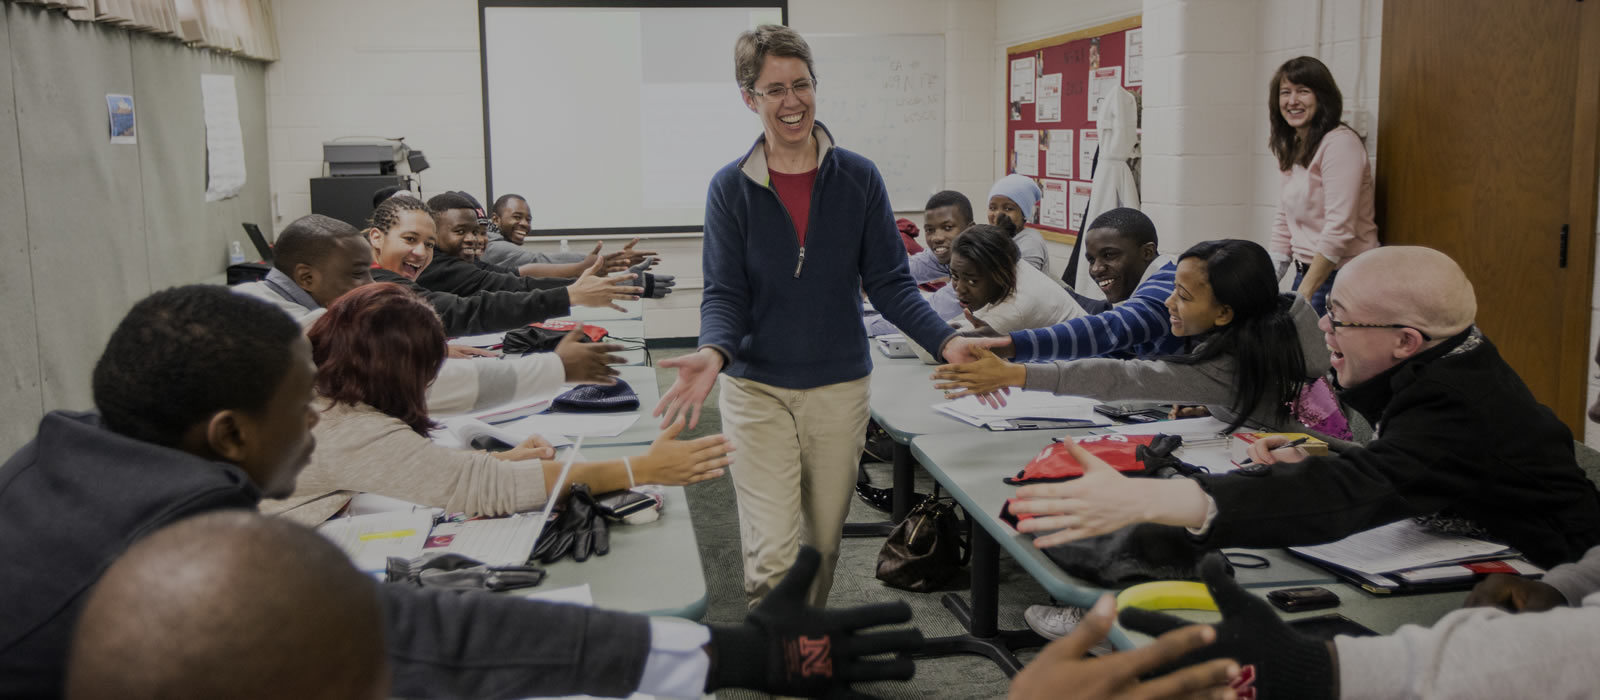 Theiss-Morse giving high fives to students in a classroom